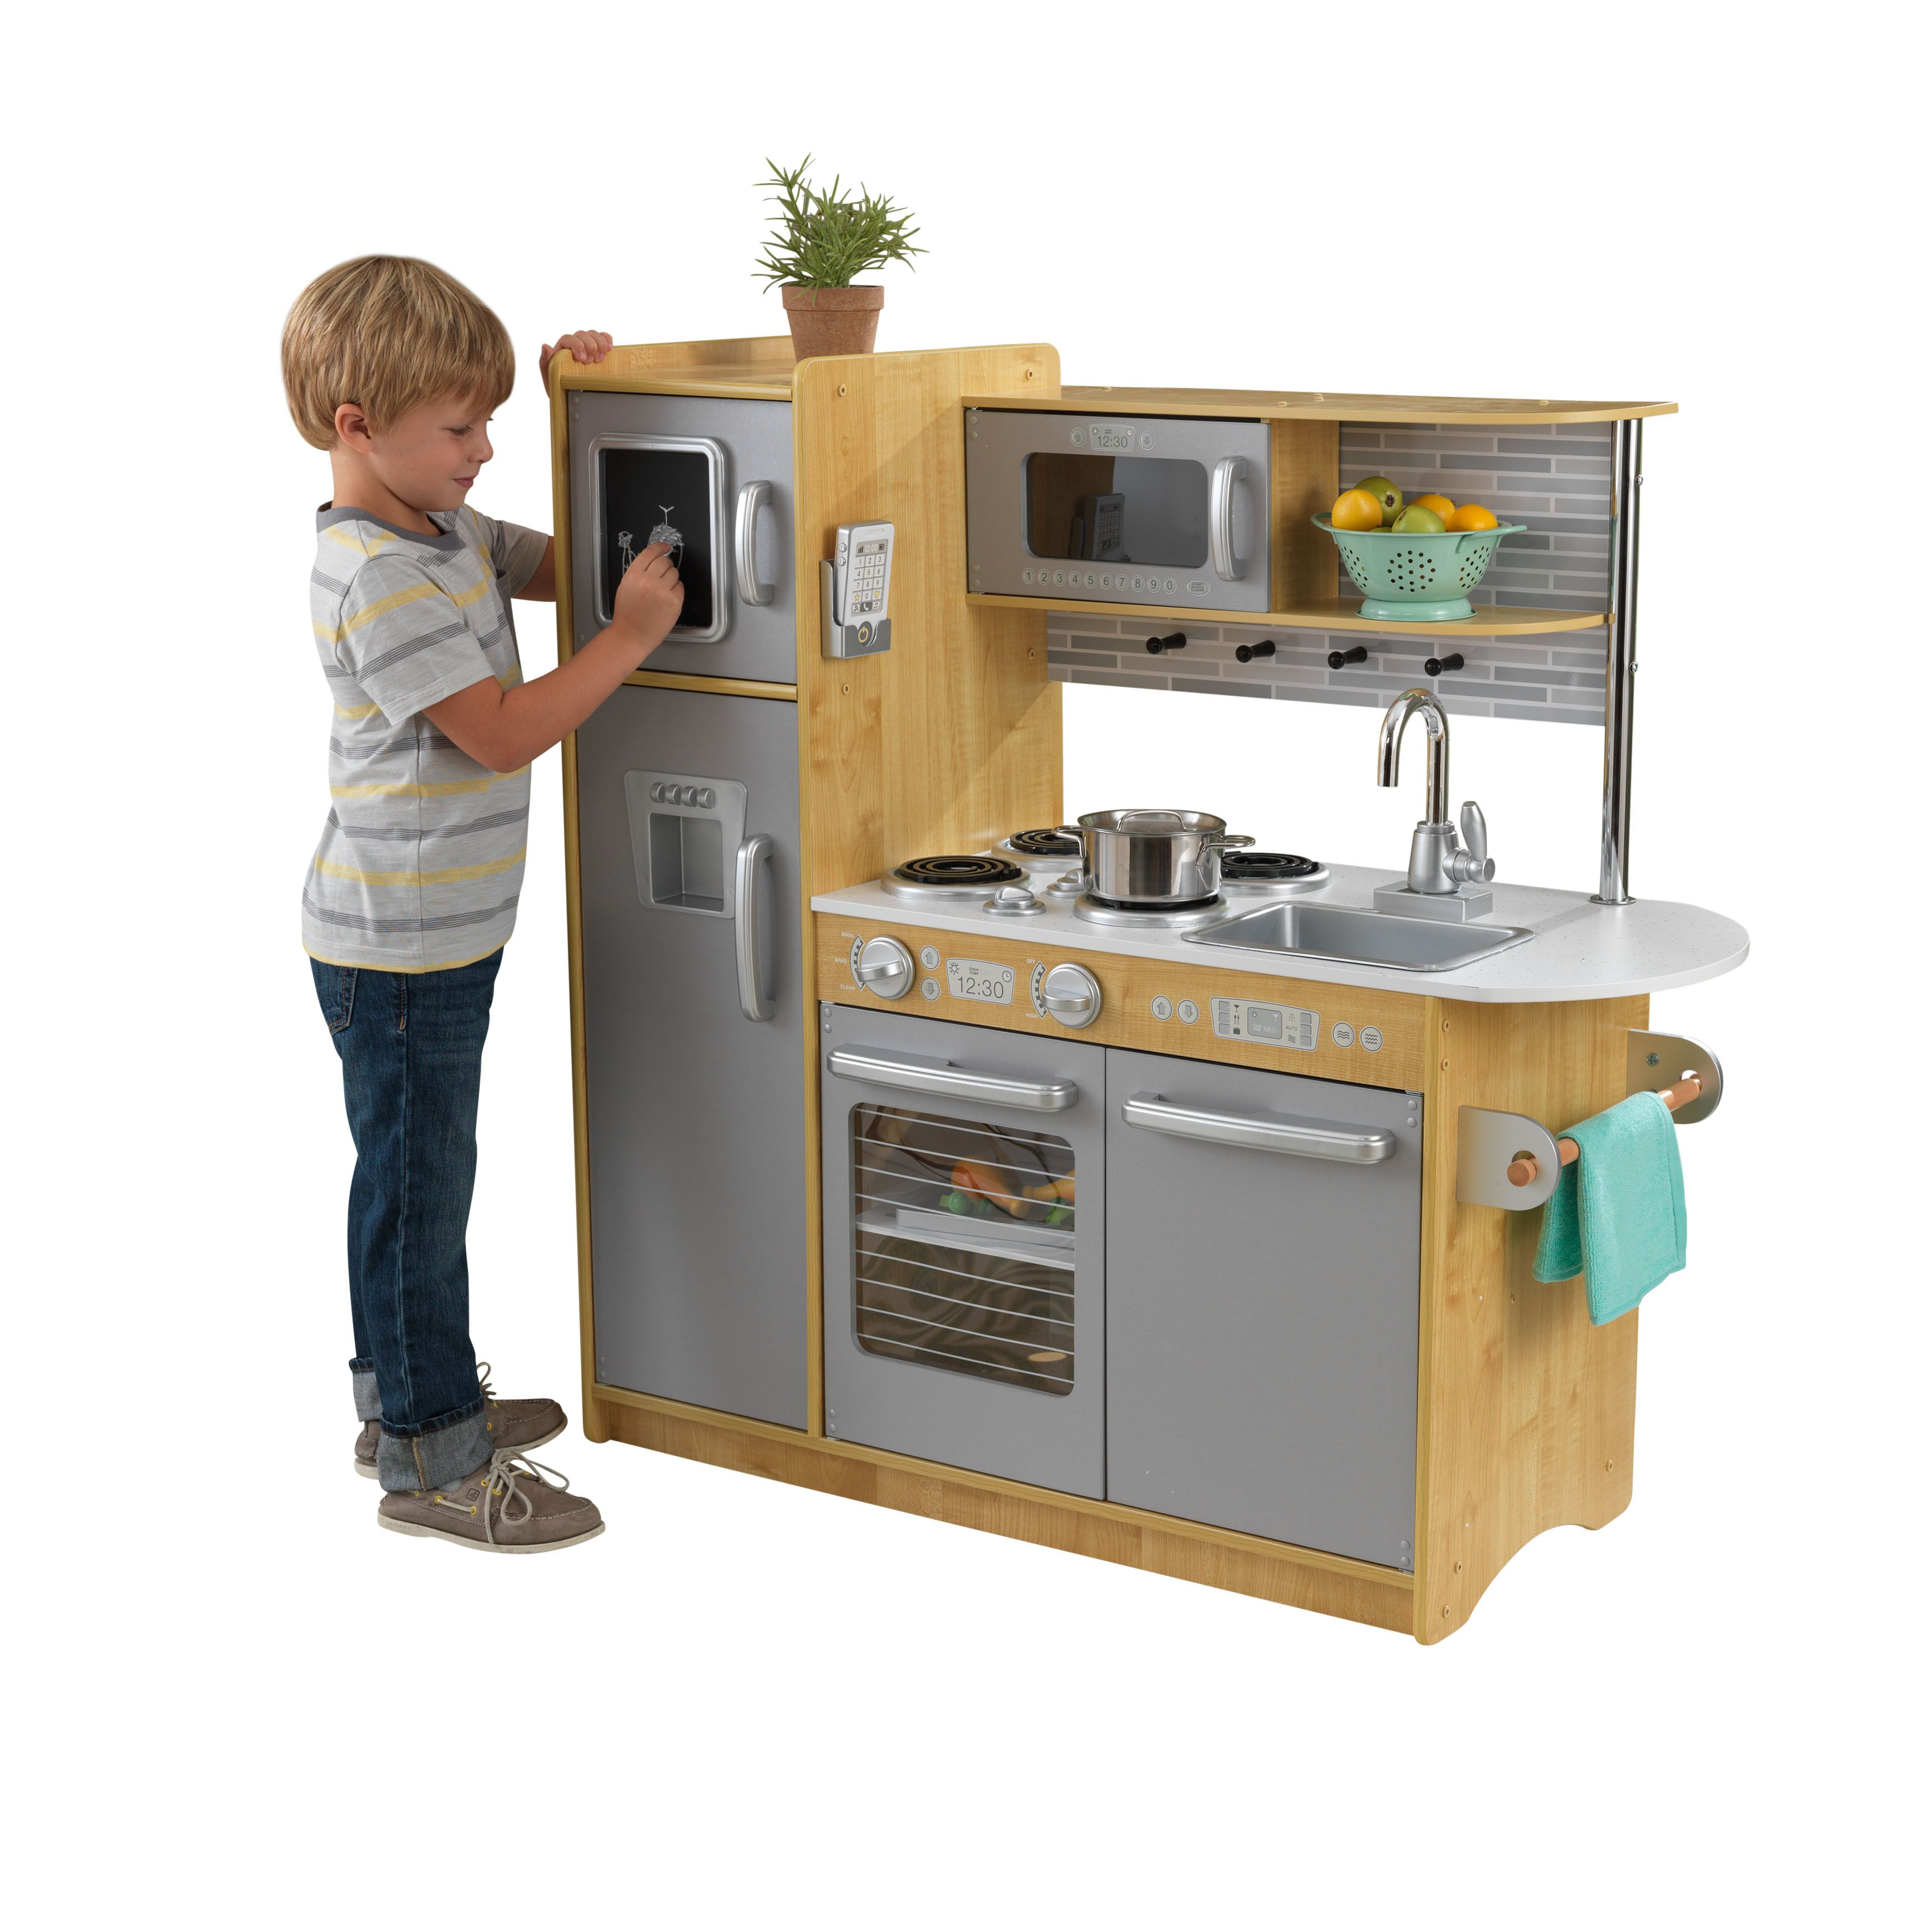 Toys Wooden play kitchen, Kitchen sets for kids, Uptown